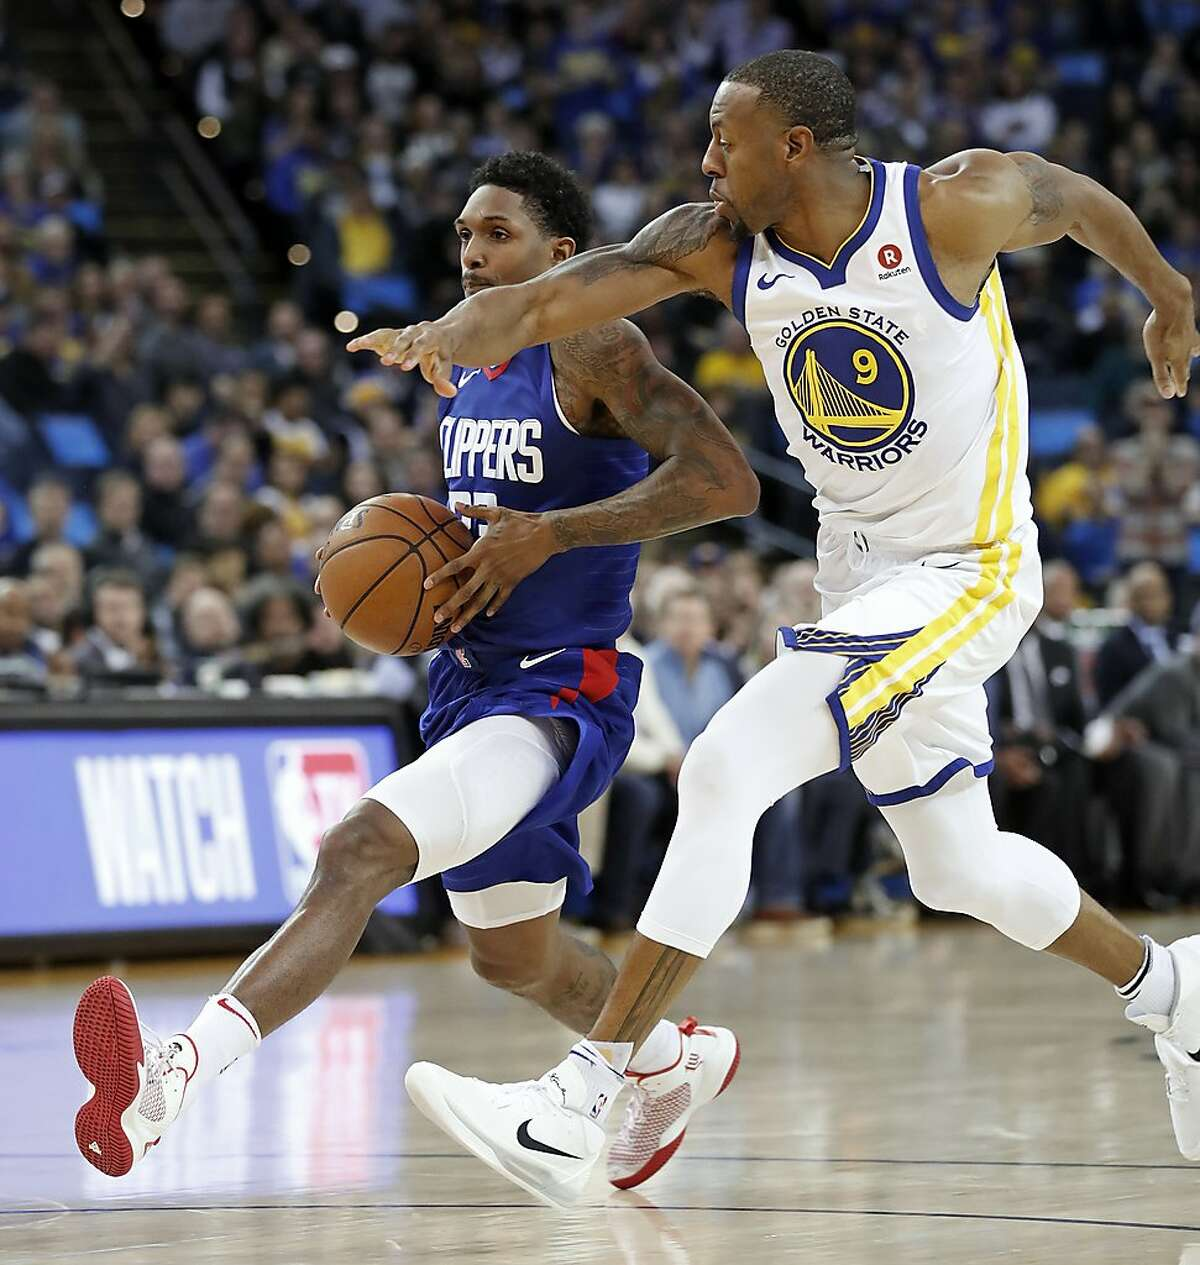 Golden State Warriors' Andre Iguodala can't slow down Los Angeles Clippers' Lou Williams during Clippers' 125-106 win in NBA game at Oracle Arena in Oakland, Calif., on Wednesday, January 10, 2018.